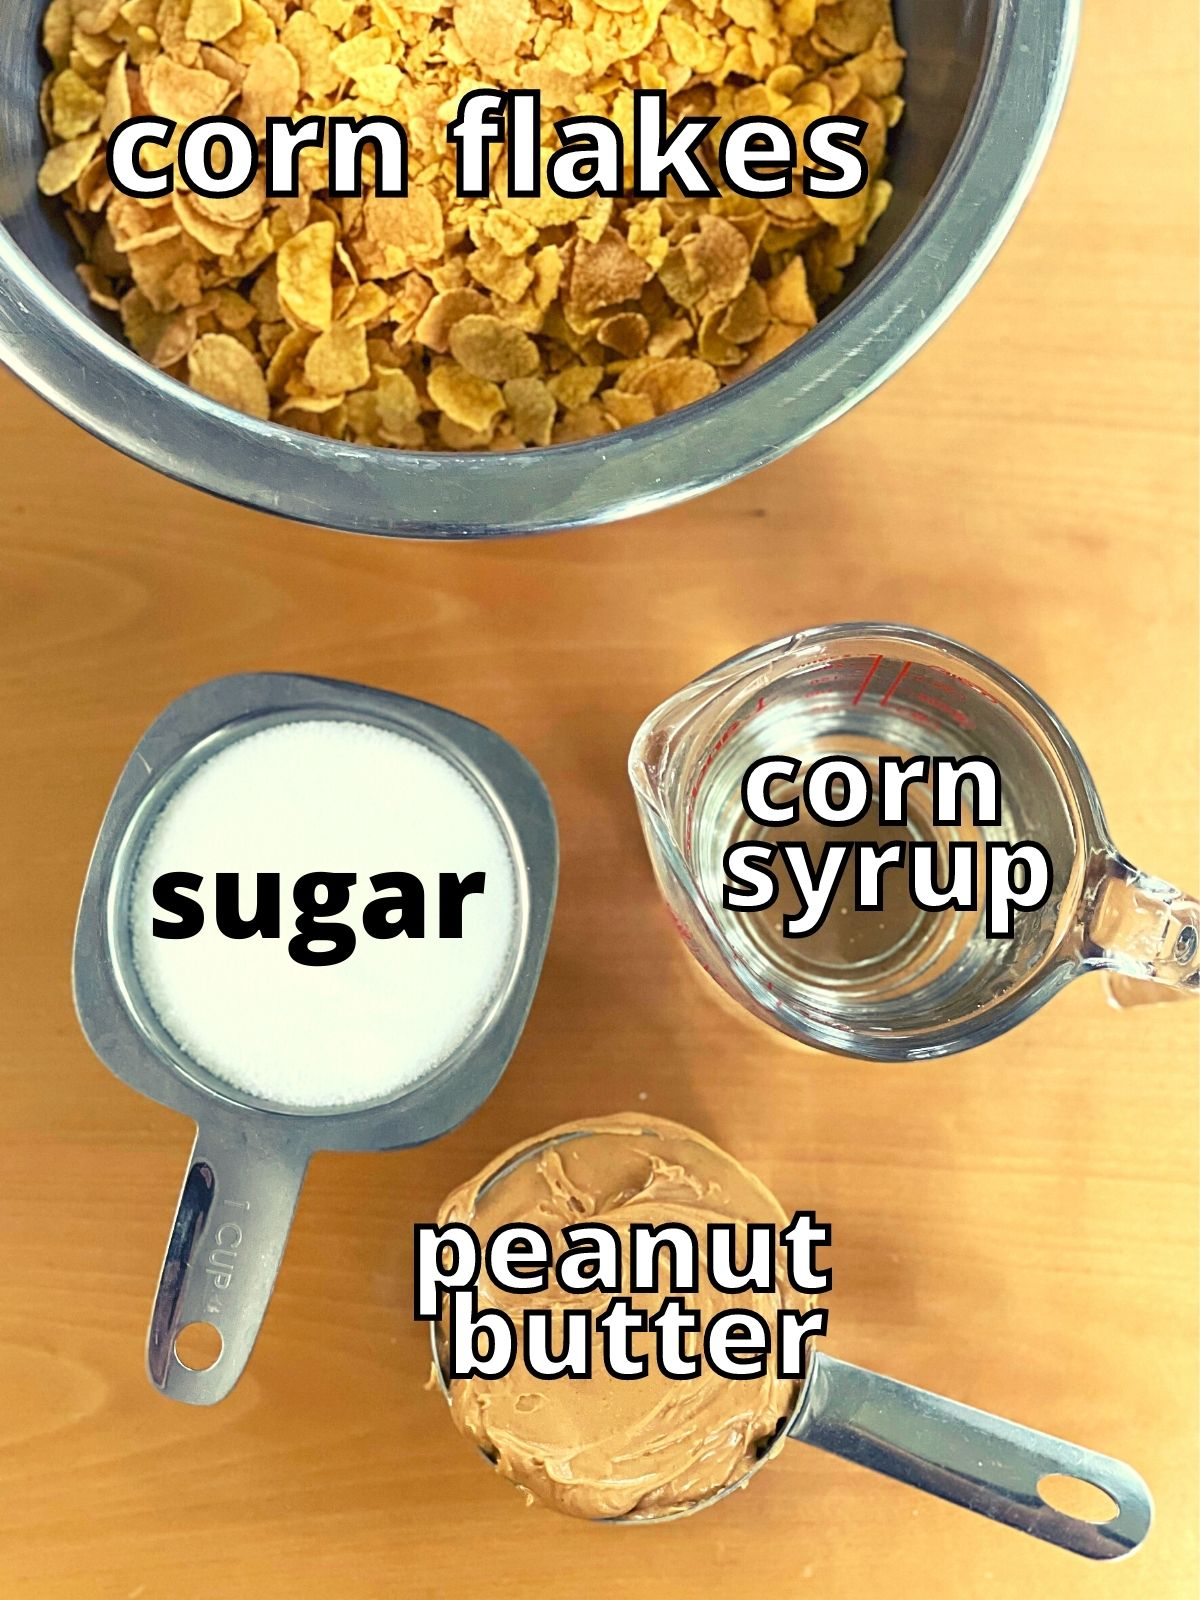 cornflake candy ingredients including sugar, corn syrup, peanut butter, and corn flakes.